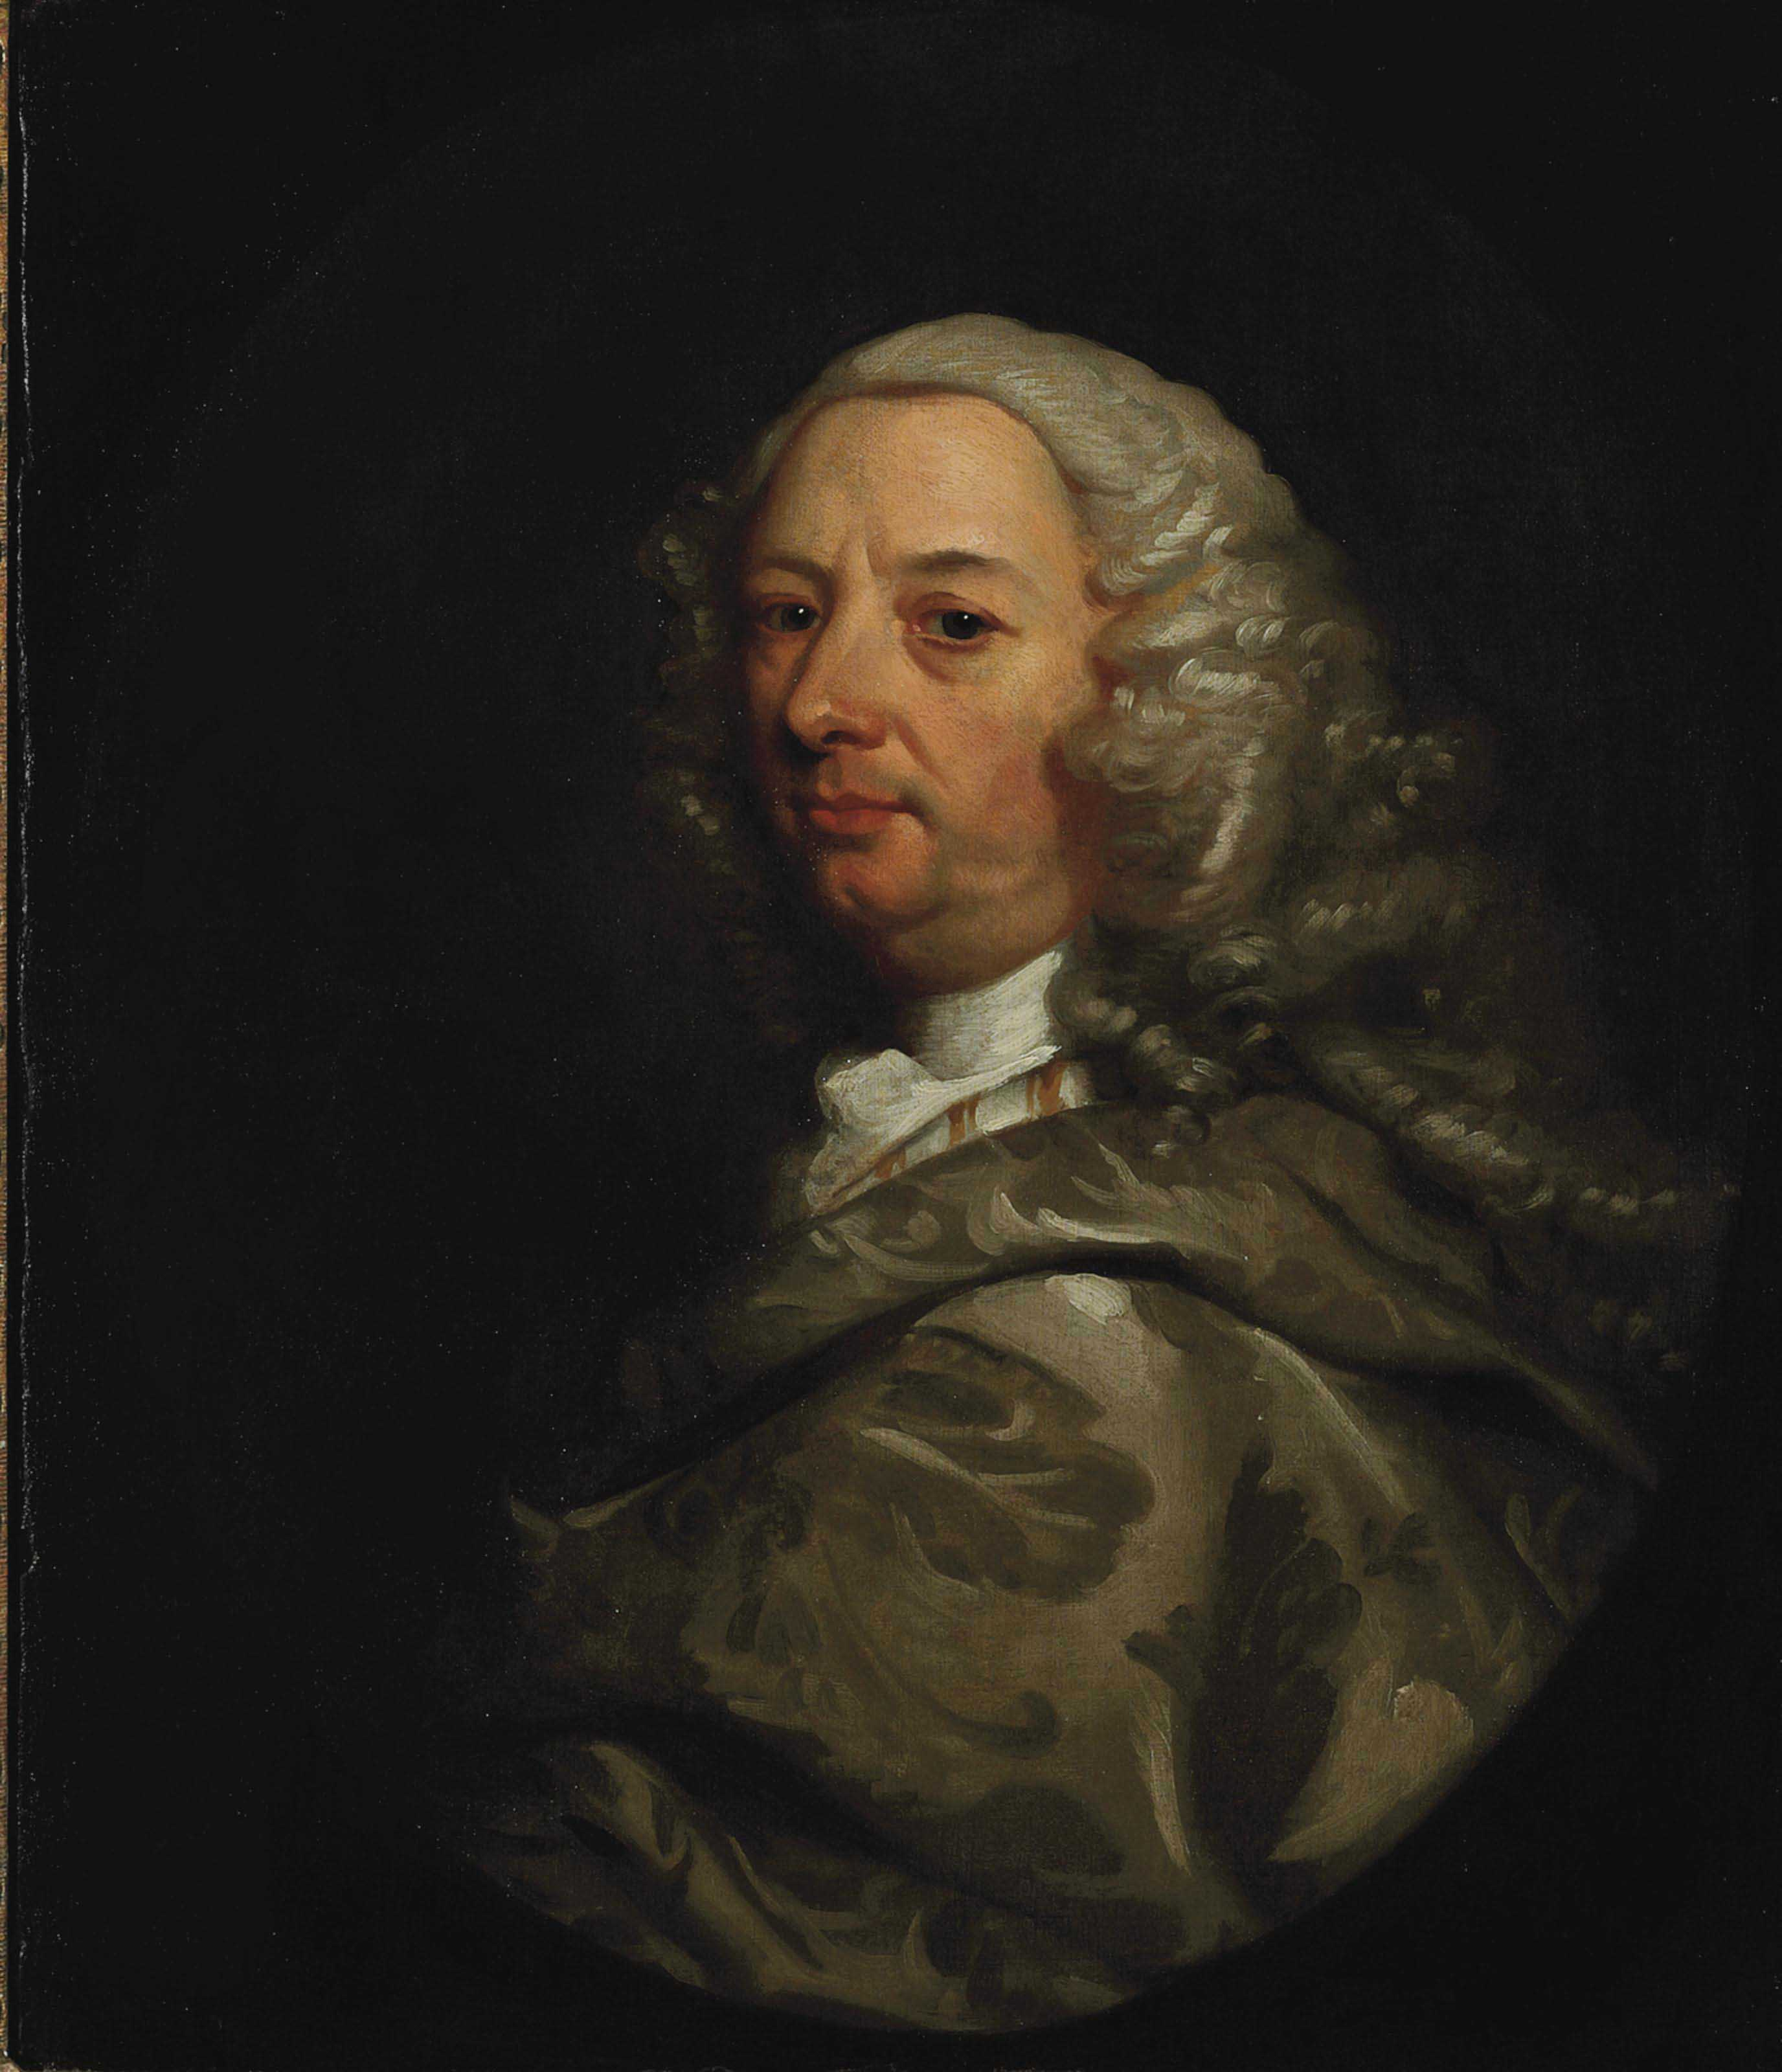 Portrait of a gentleman, half-length, in a silver brocaded mantle, in a painted oval